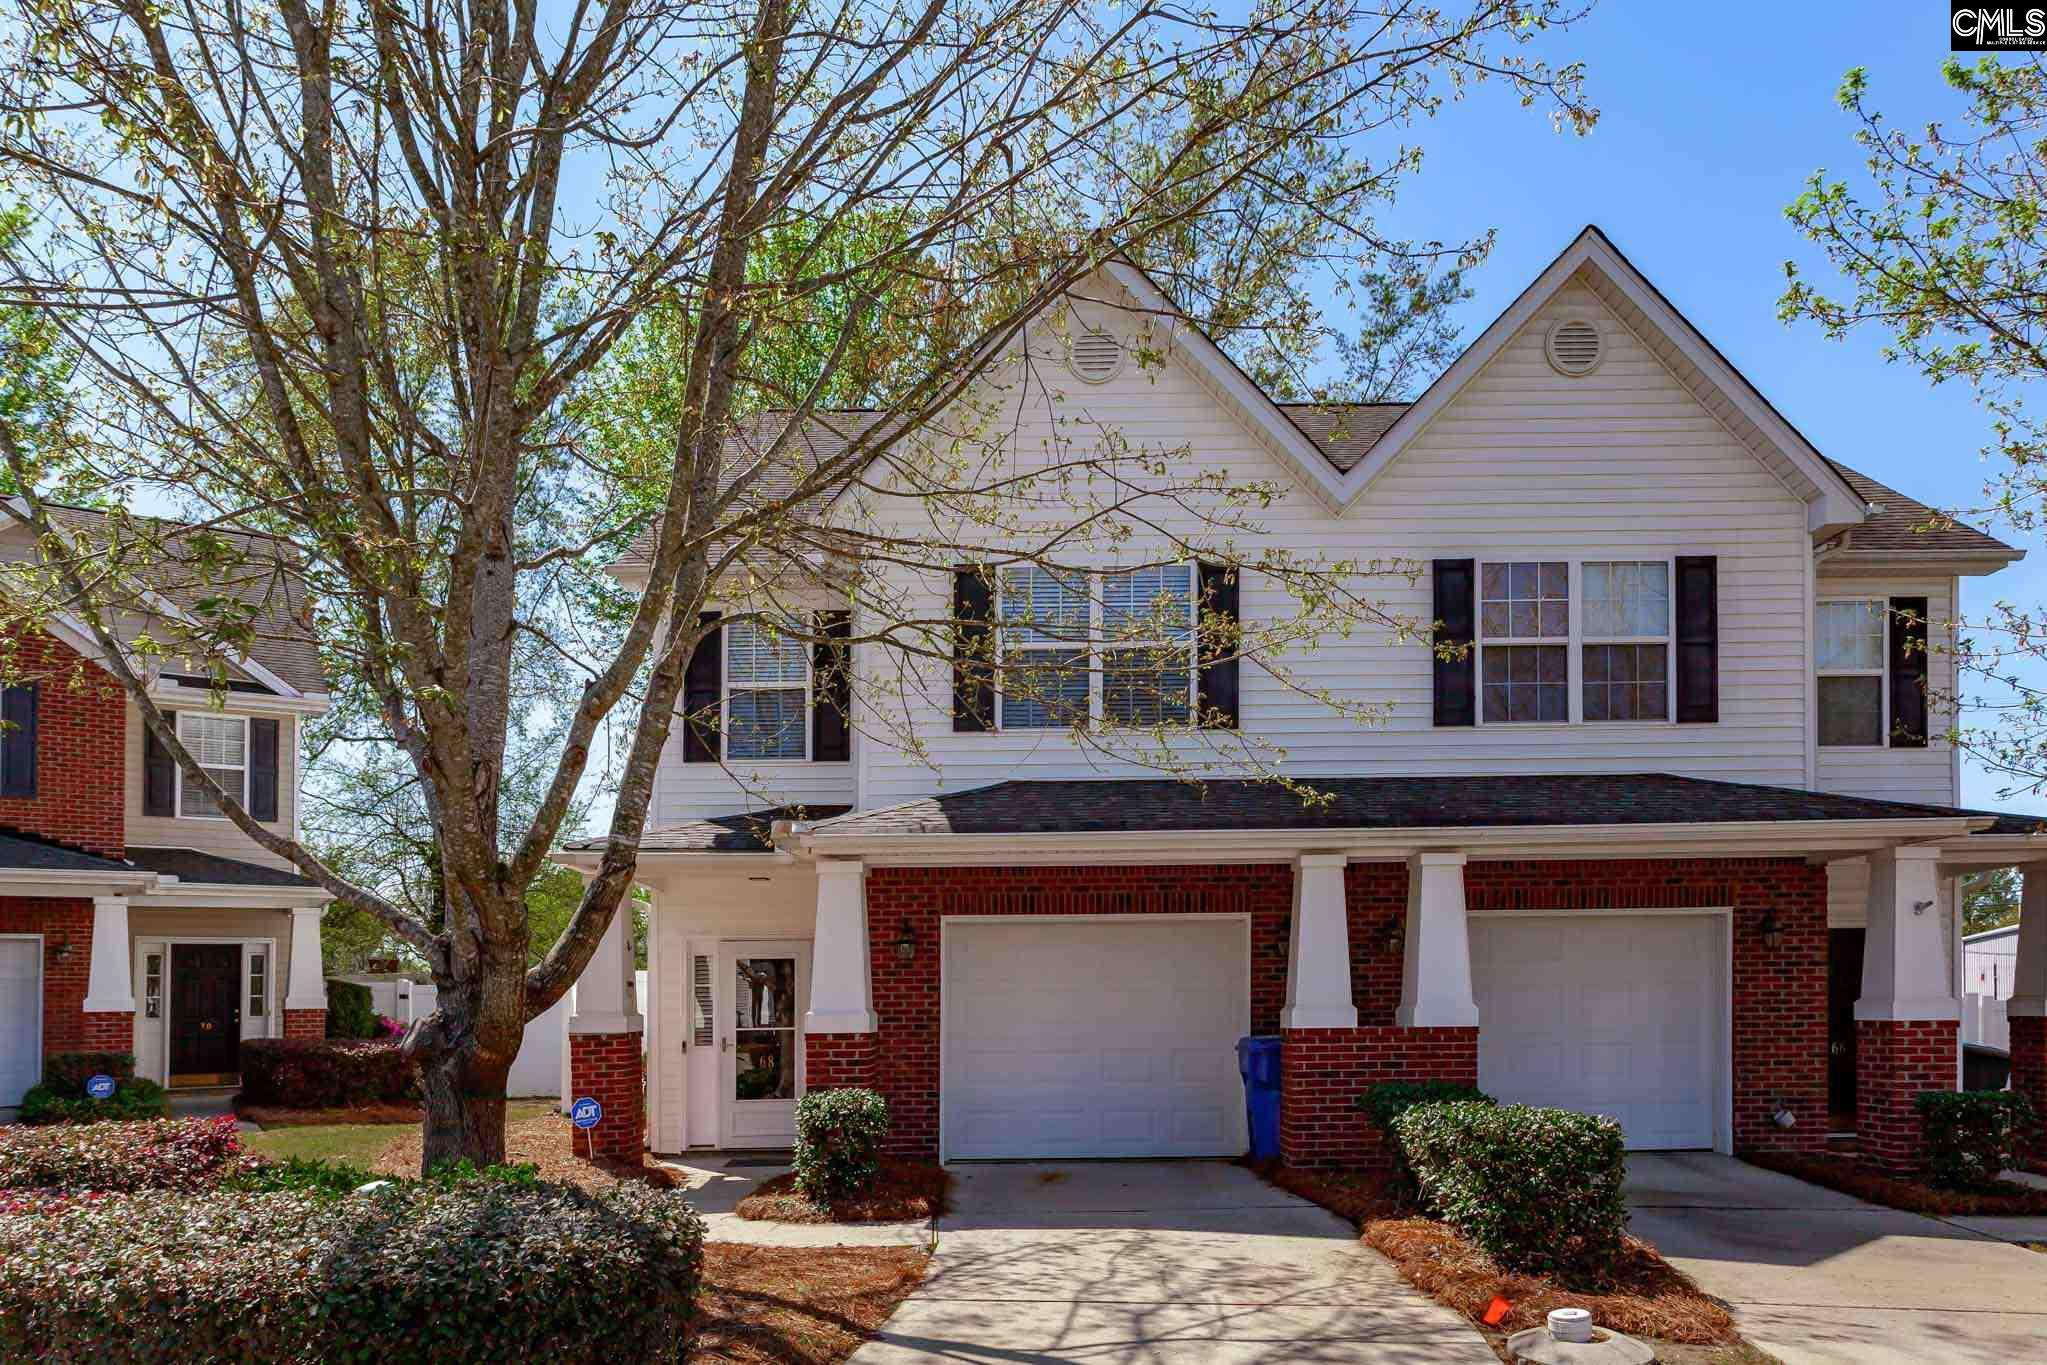 68 Garners Springs Columbia, SC 29209